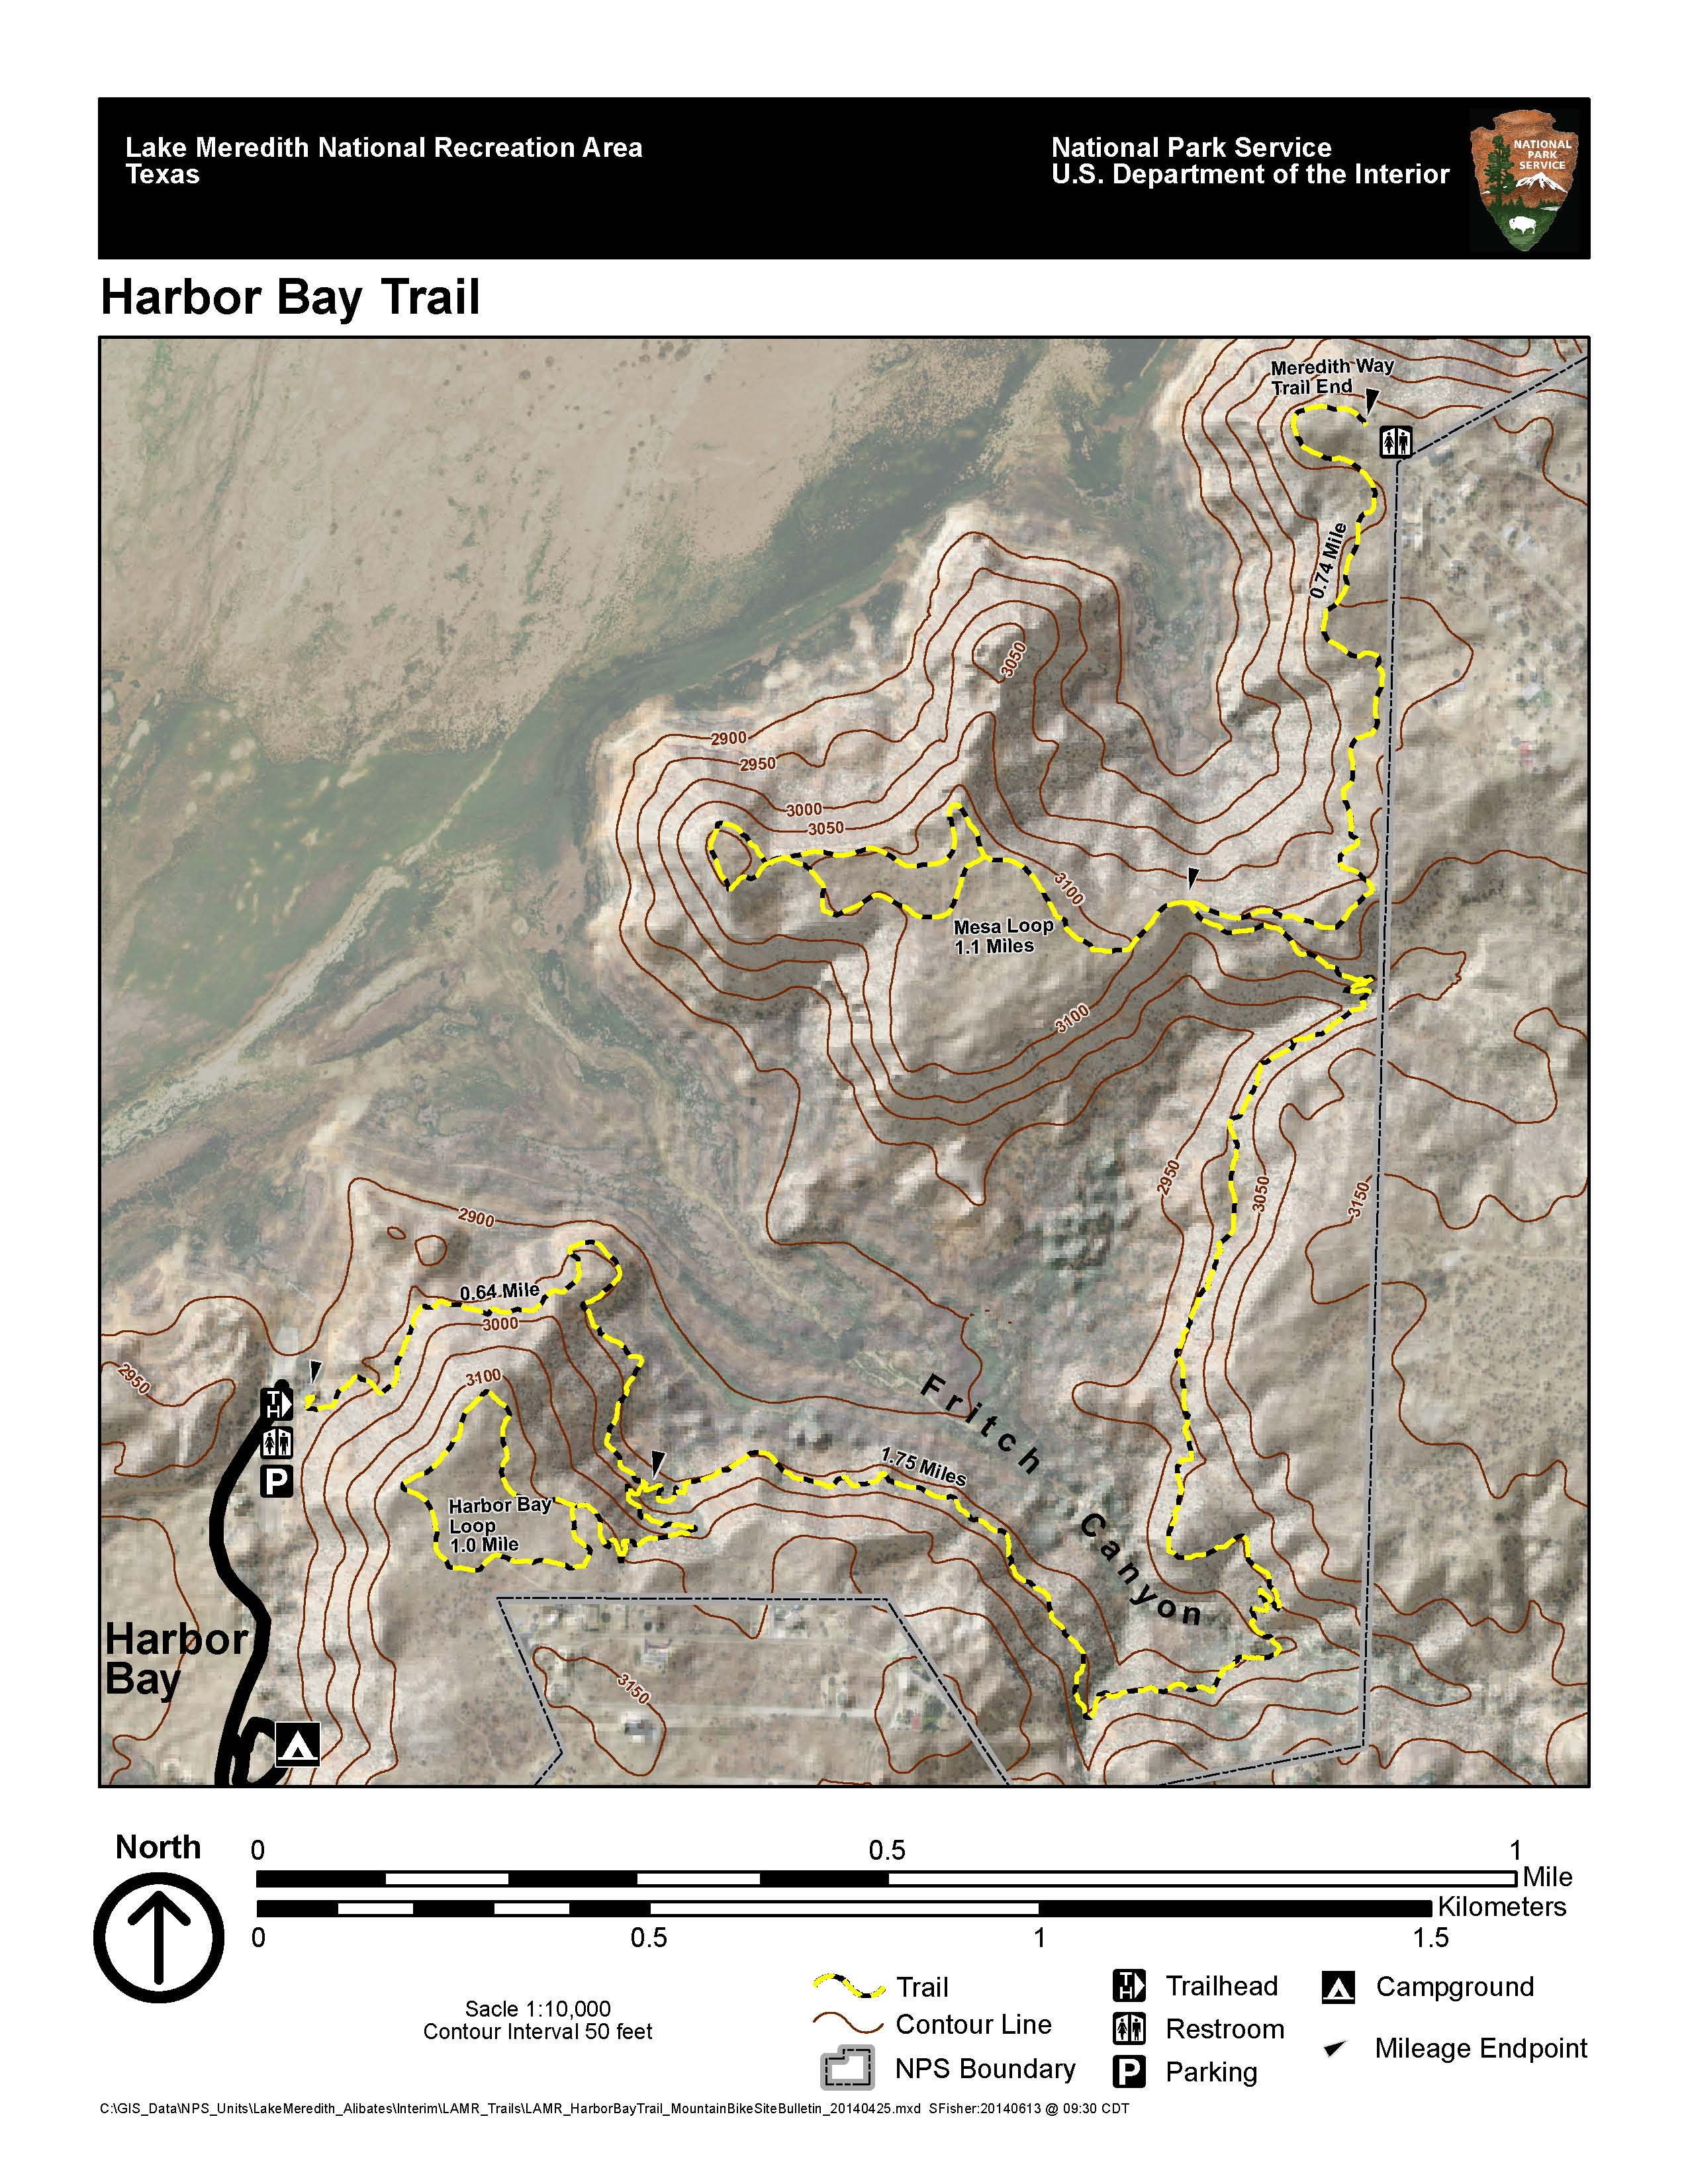 Harbor bay trail lake meredith national recreation area for Lake meredith fishing report